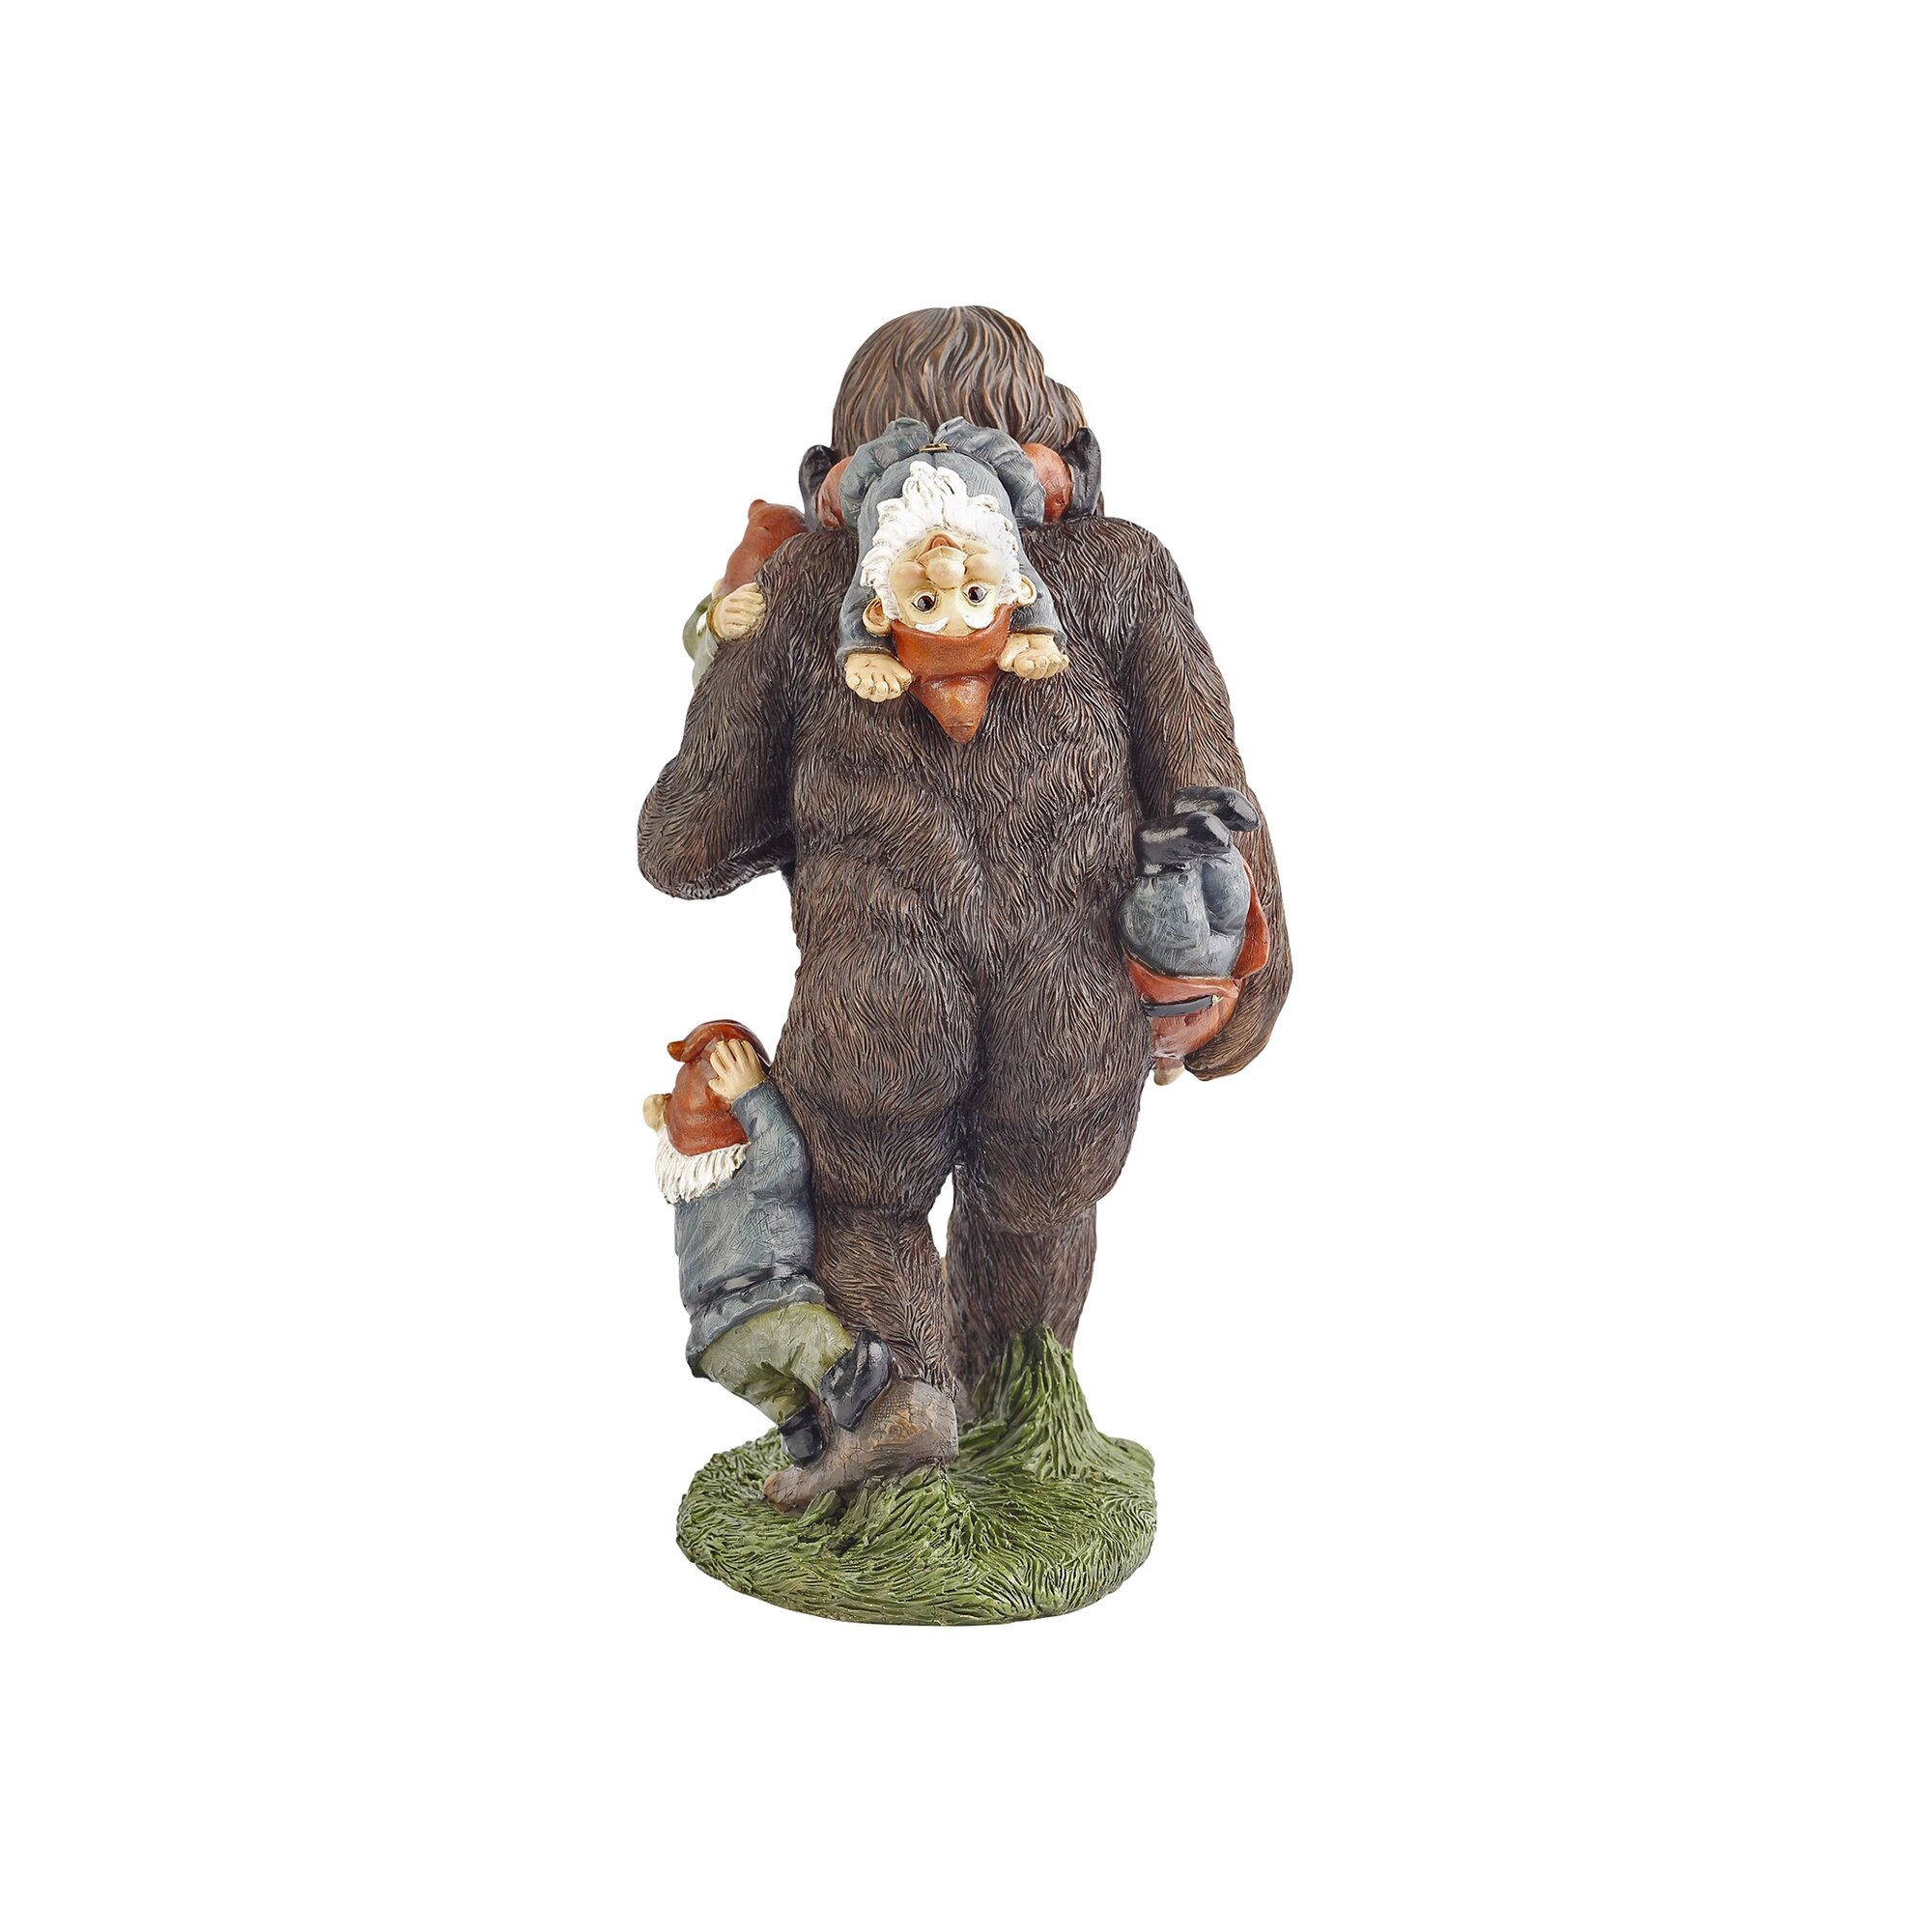 Bigfoot lawn ornament - Schlepping The Garden Gnomes Bigfoot Statue